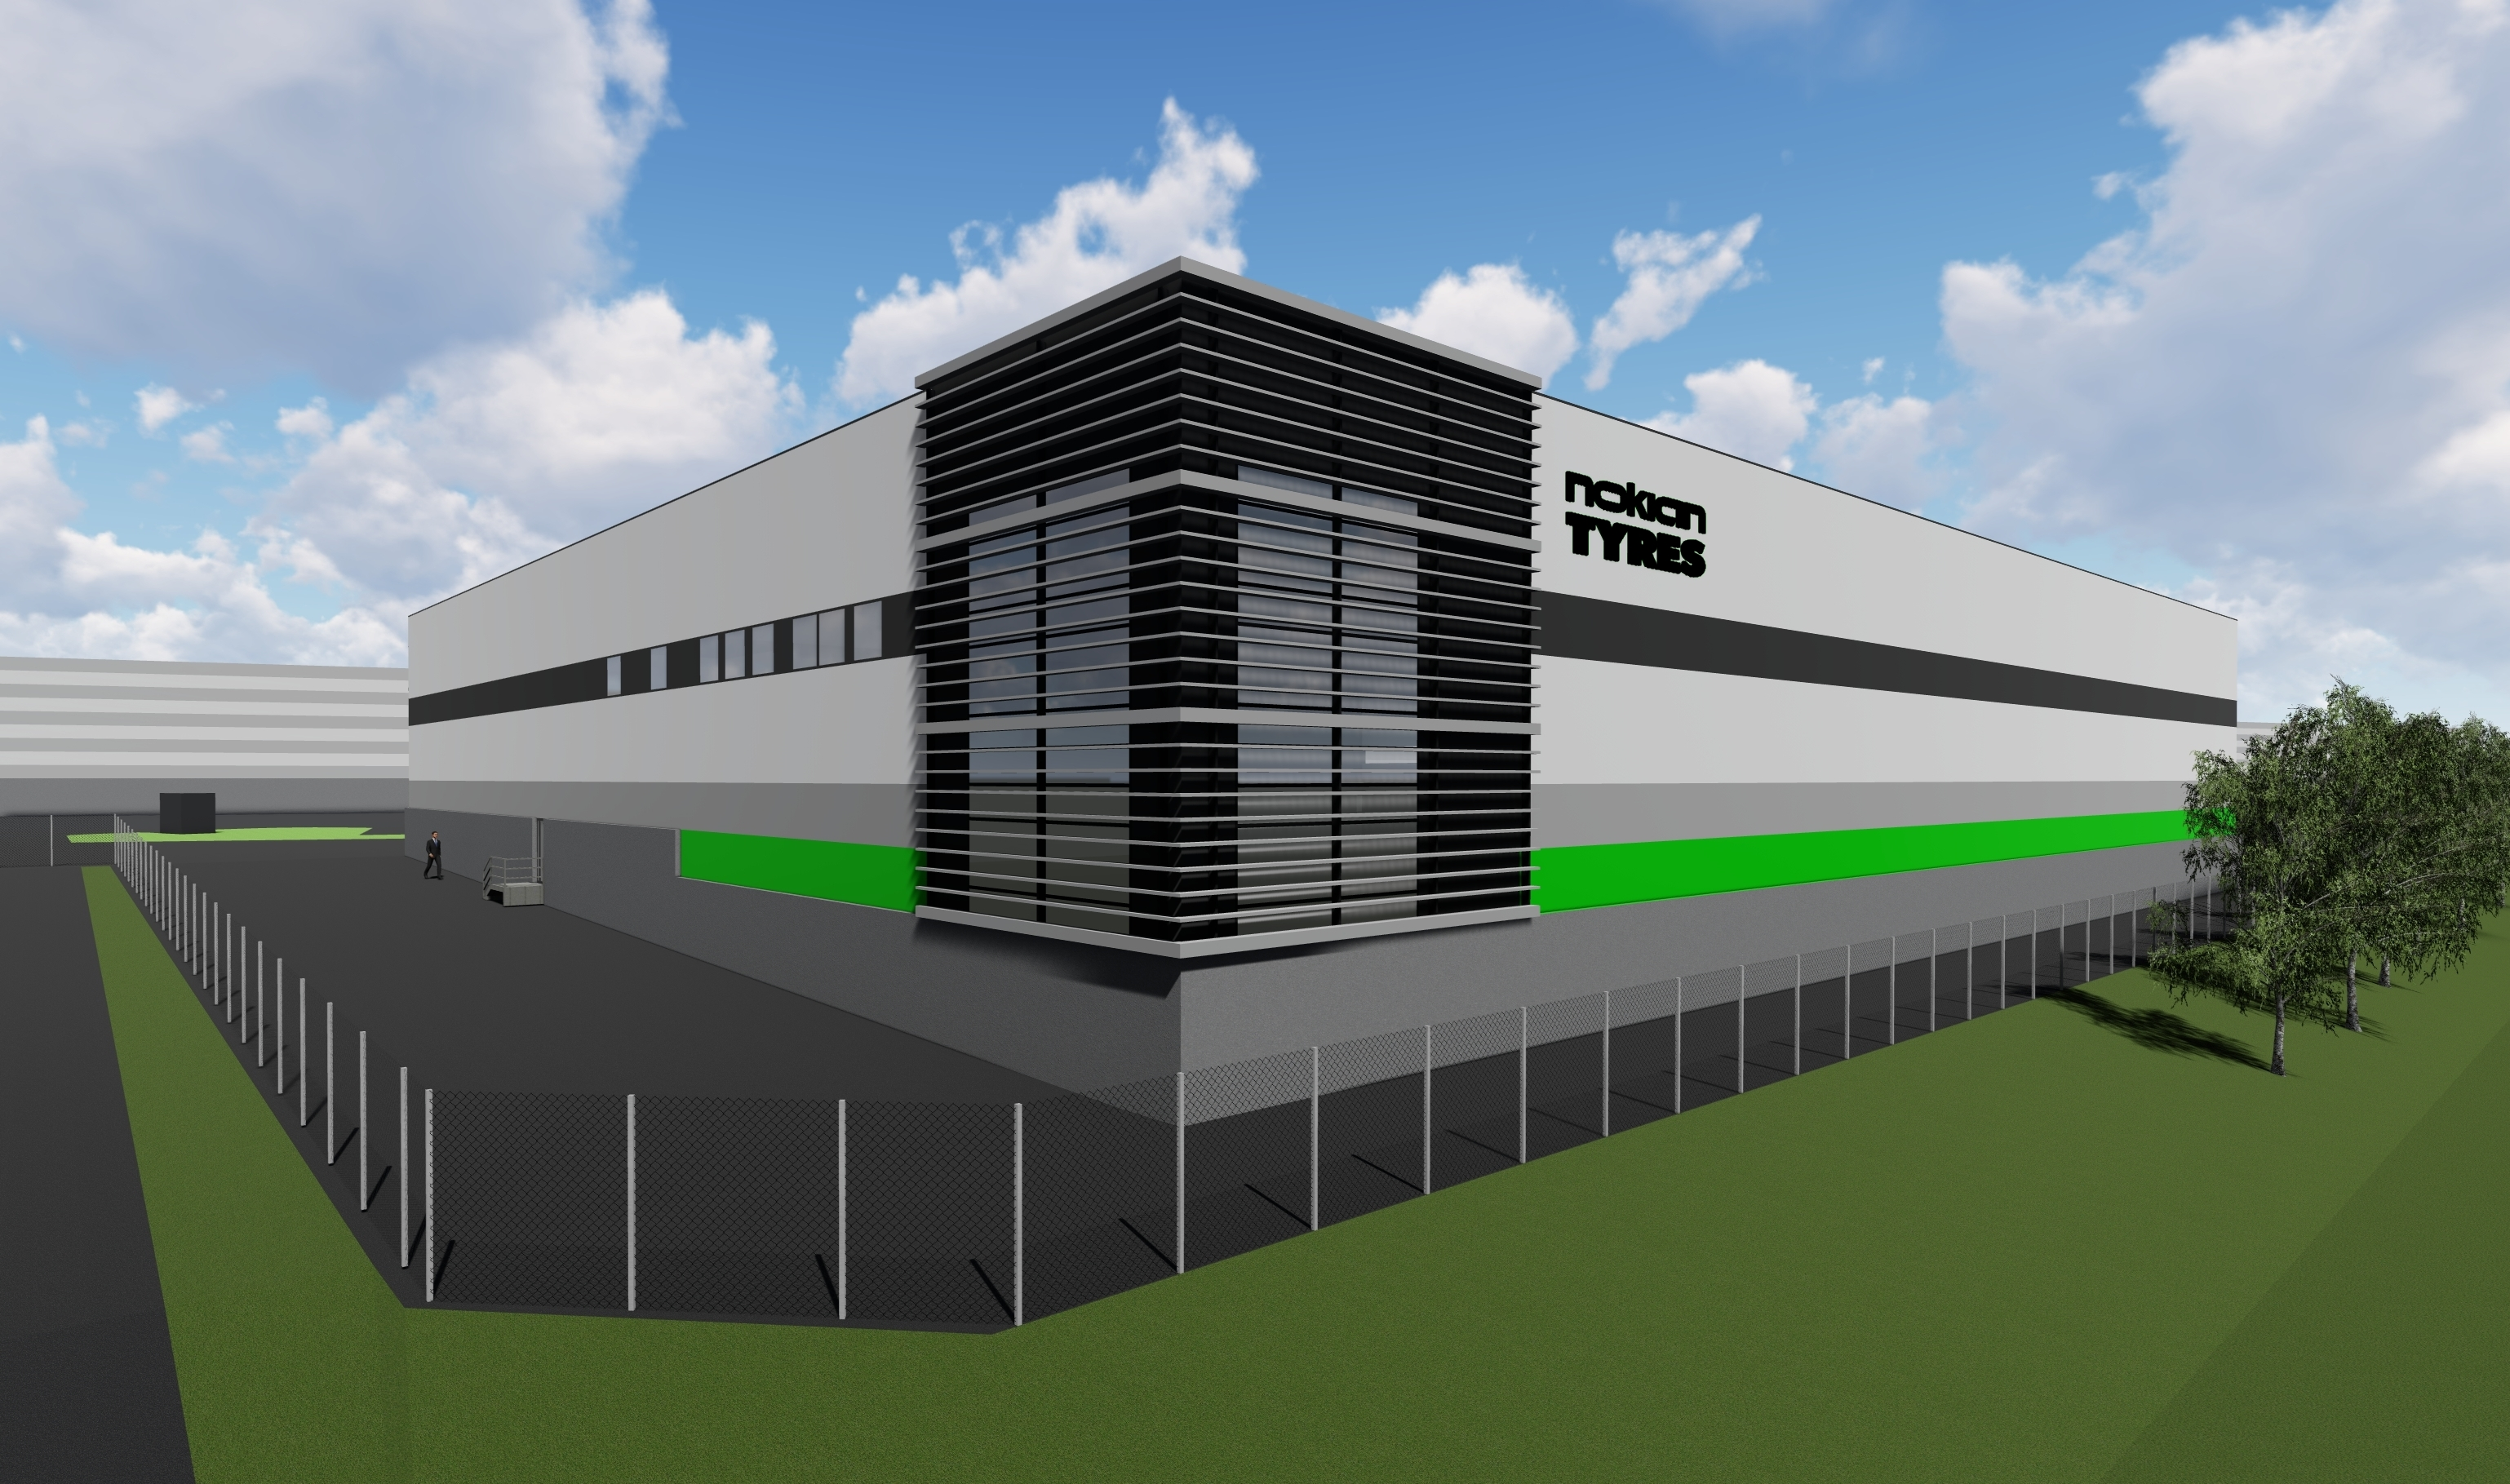 Nokian Will Build a R&D Facility for Commercial Tires